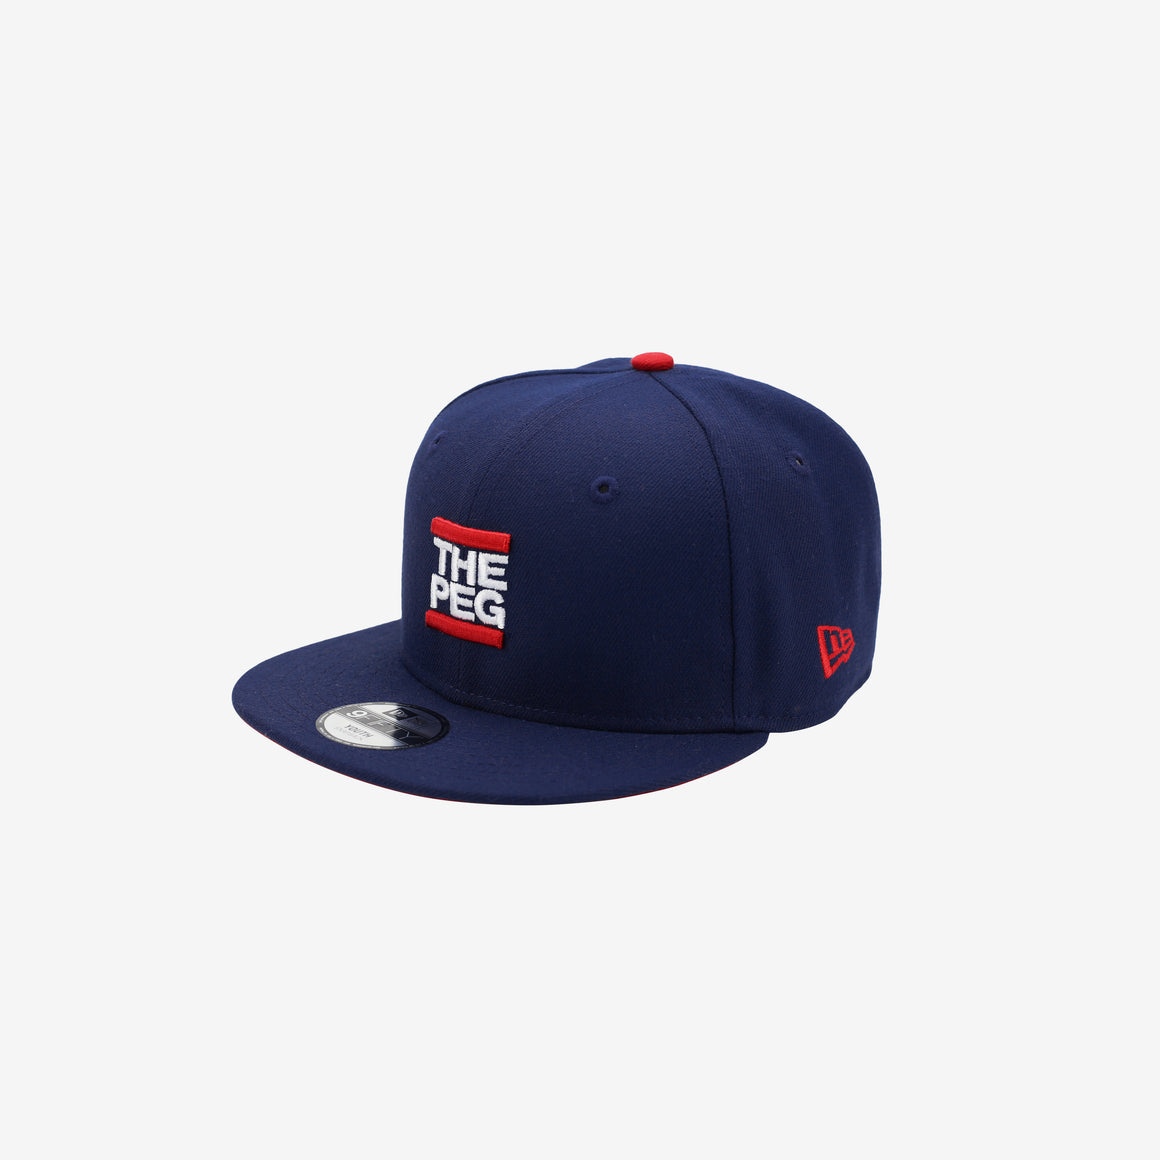 New Era Youth 9FIFTY (Navy, Scarlet)